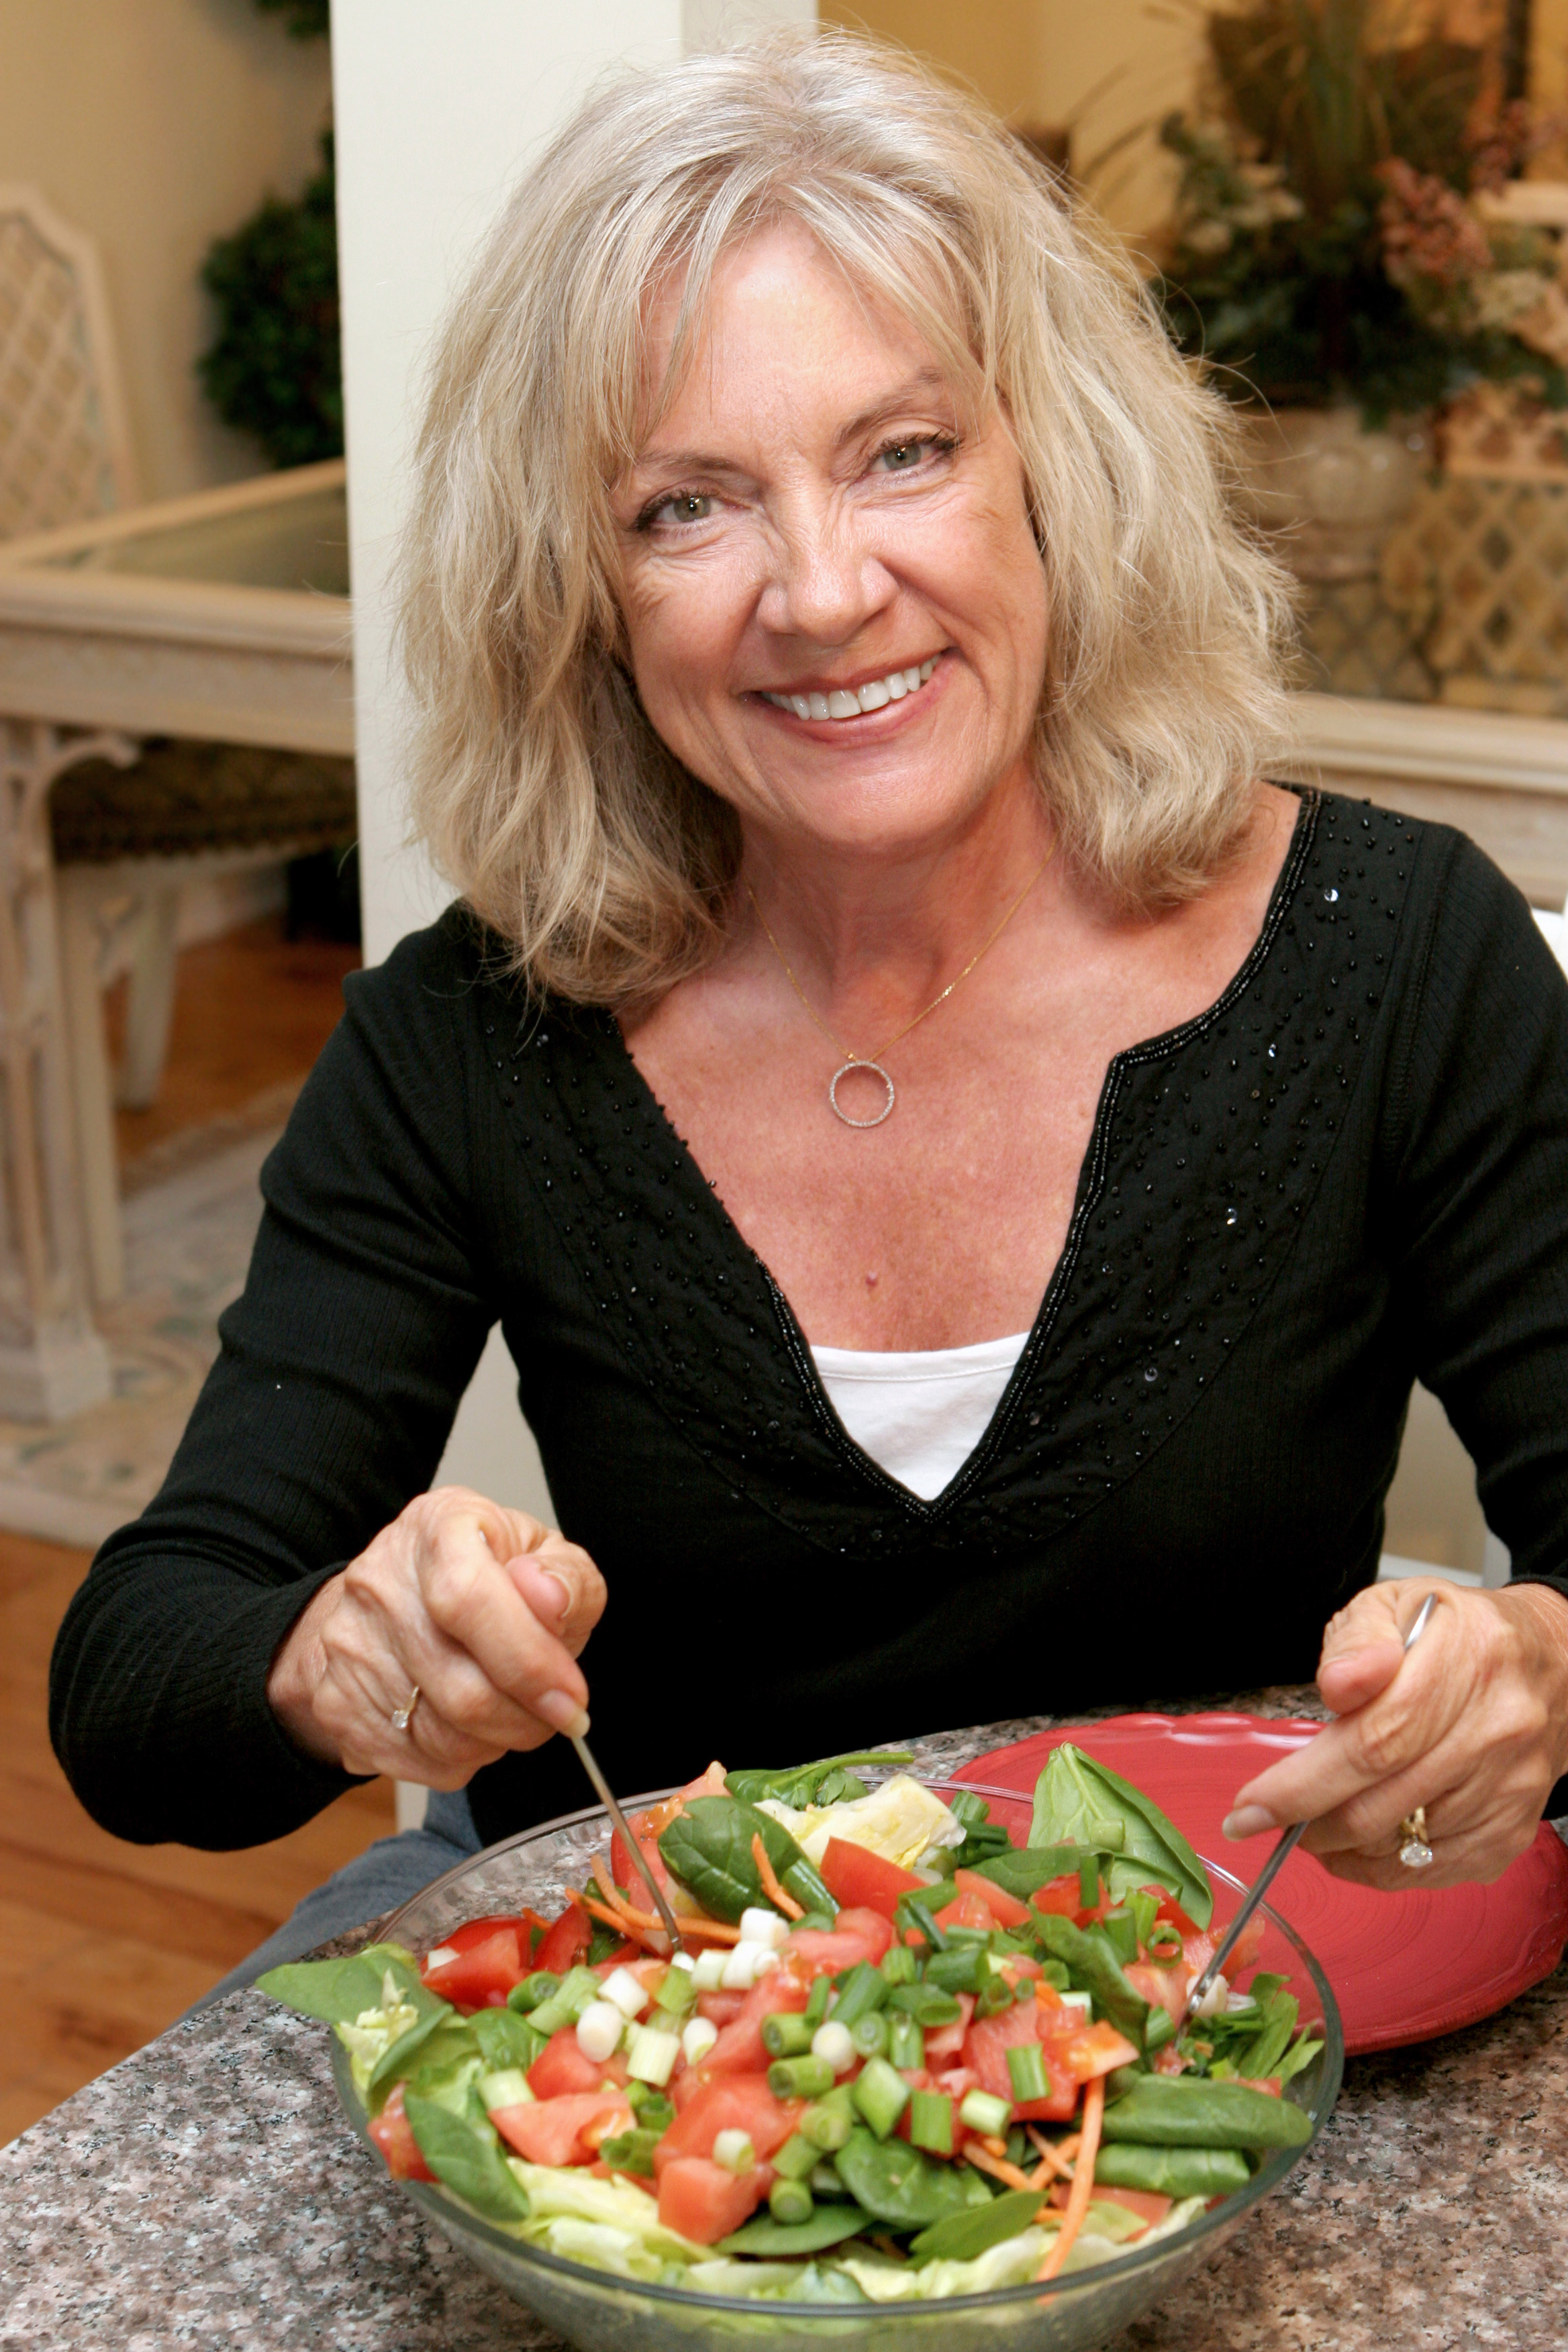 Low Fat Diet May Cut Ovarian Cancer Risk National Institutes Of Health Nih